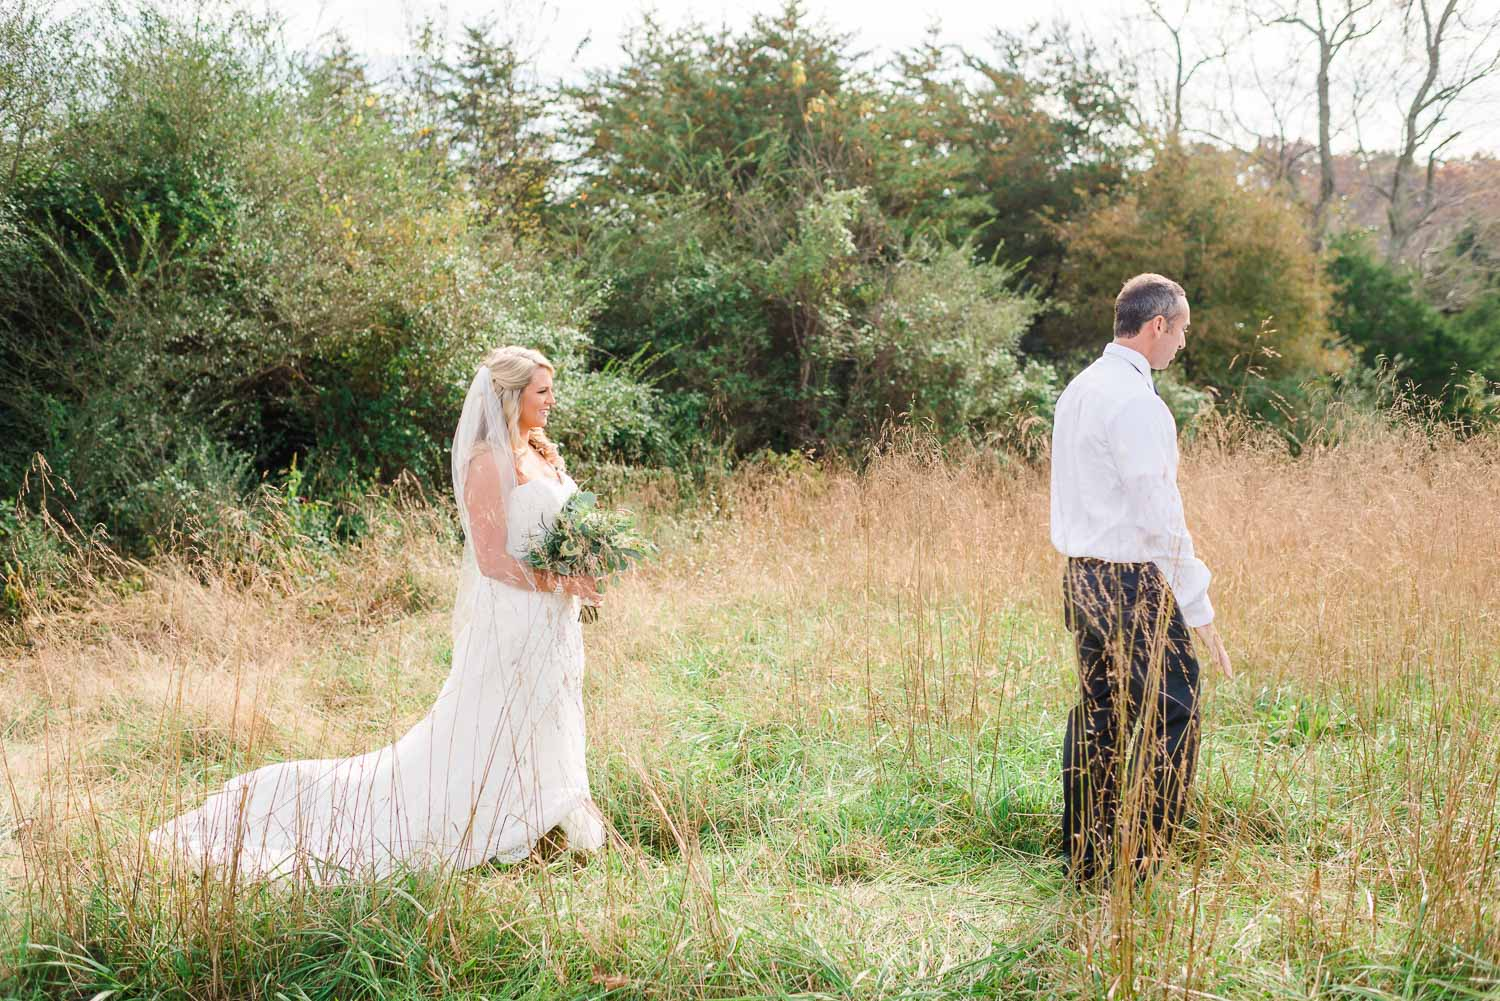 bride walking up to the groom outside in tall grass at The Barn at drewia hill